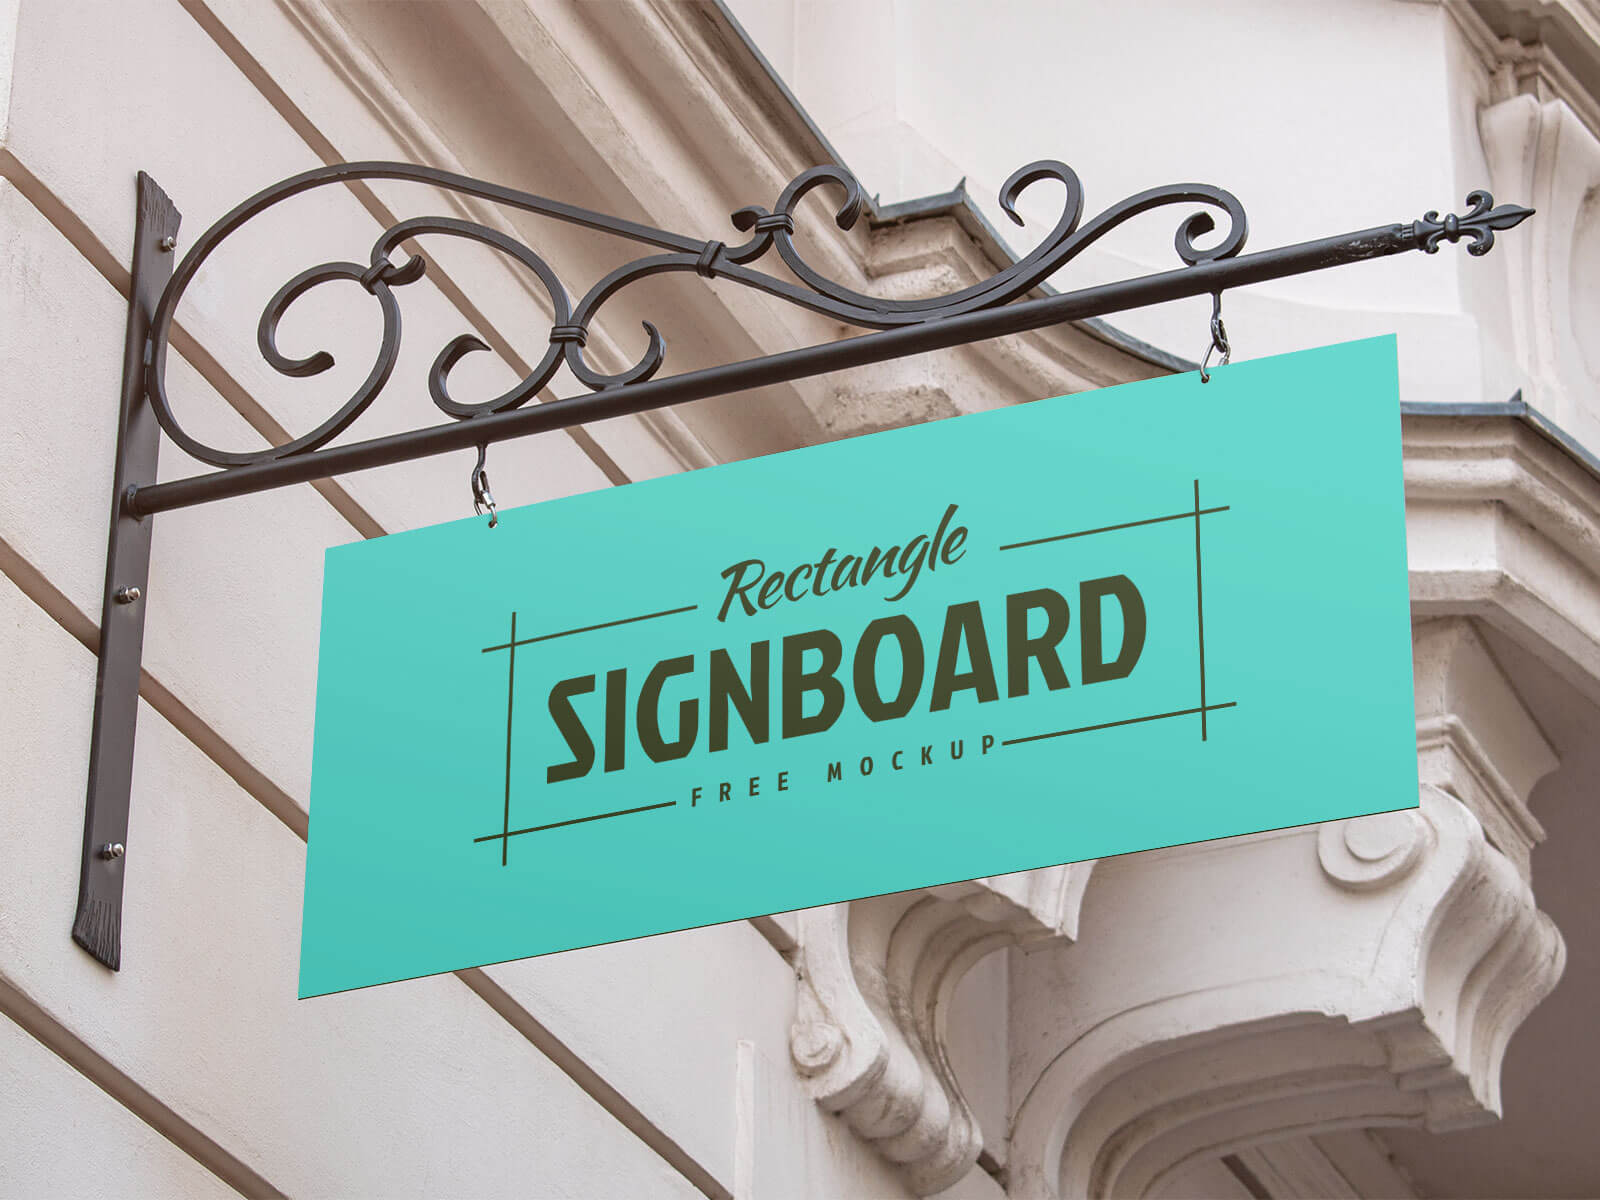 Free-Vintage-Wall-Mounted-Rectangle-Signboard-Mockup-PSD-Set